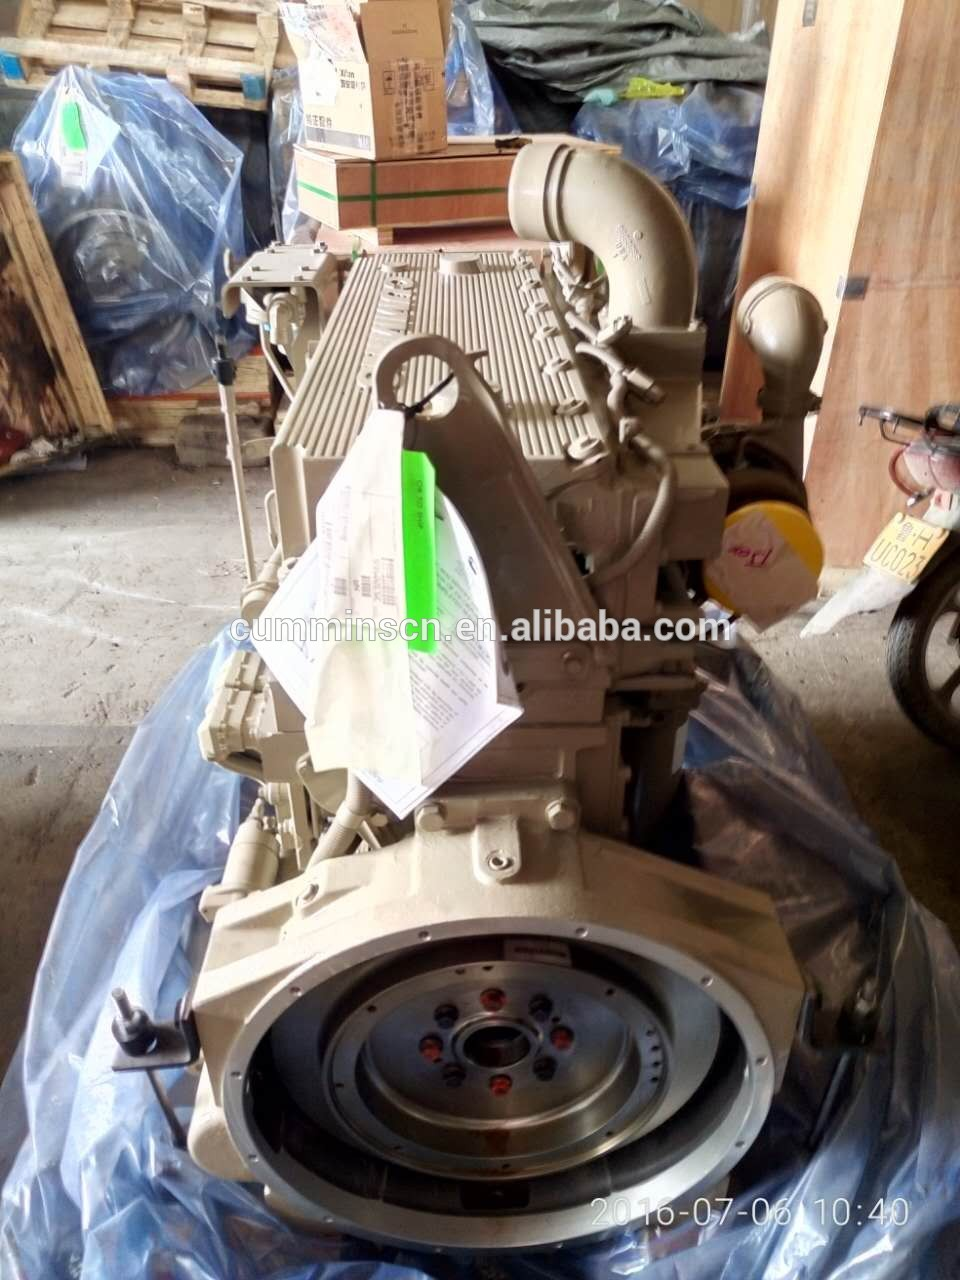 China Isuzu Diesel Engine For Sale, China Isuzu Diesel Engine For Sale  Manufacturers and Suppliers on Alibaba.com